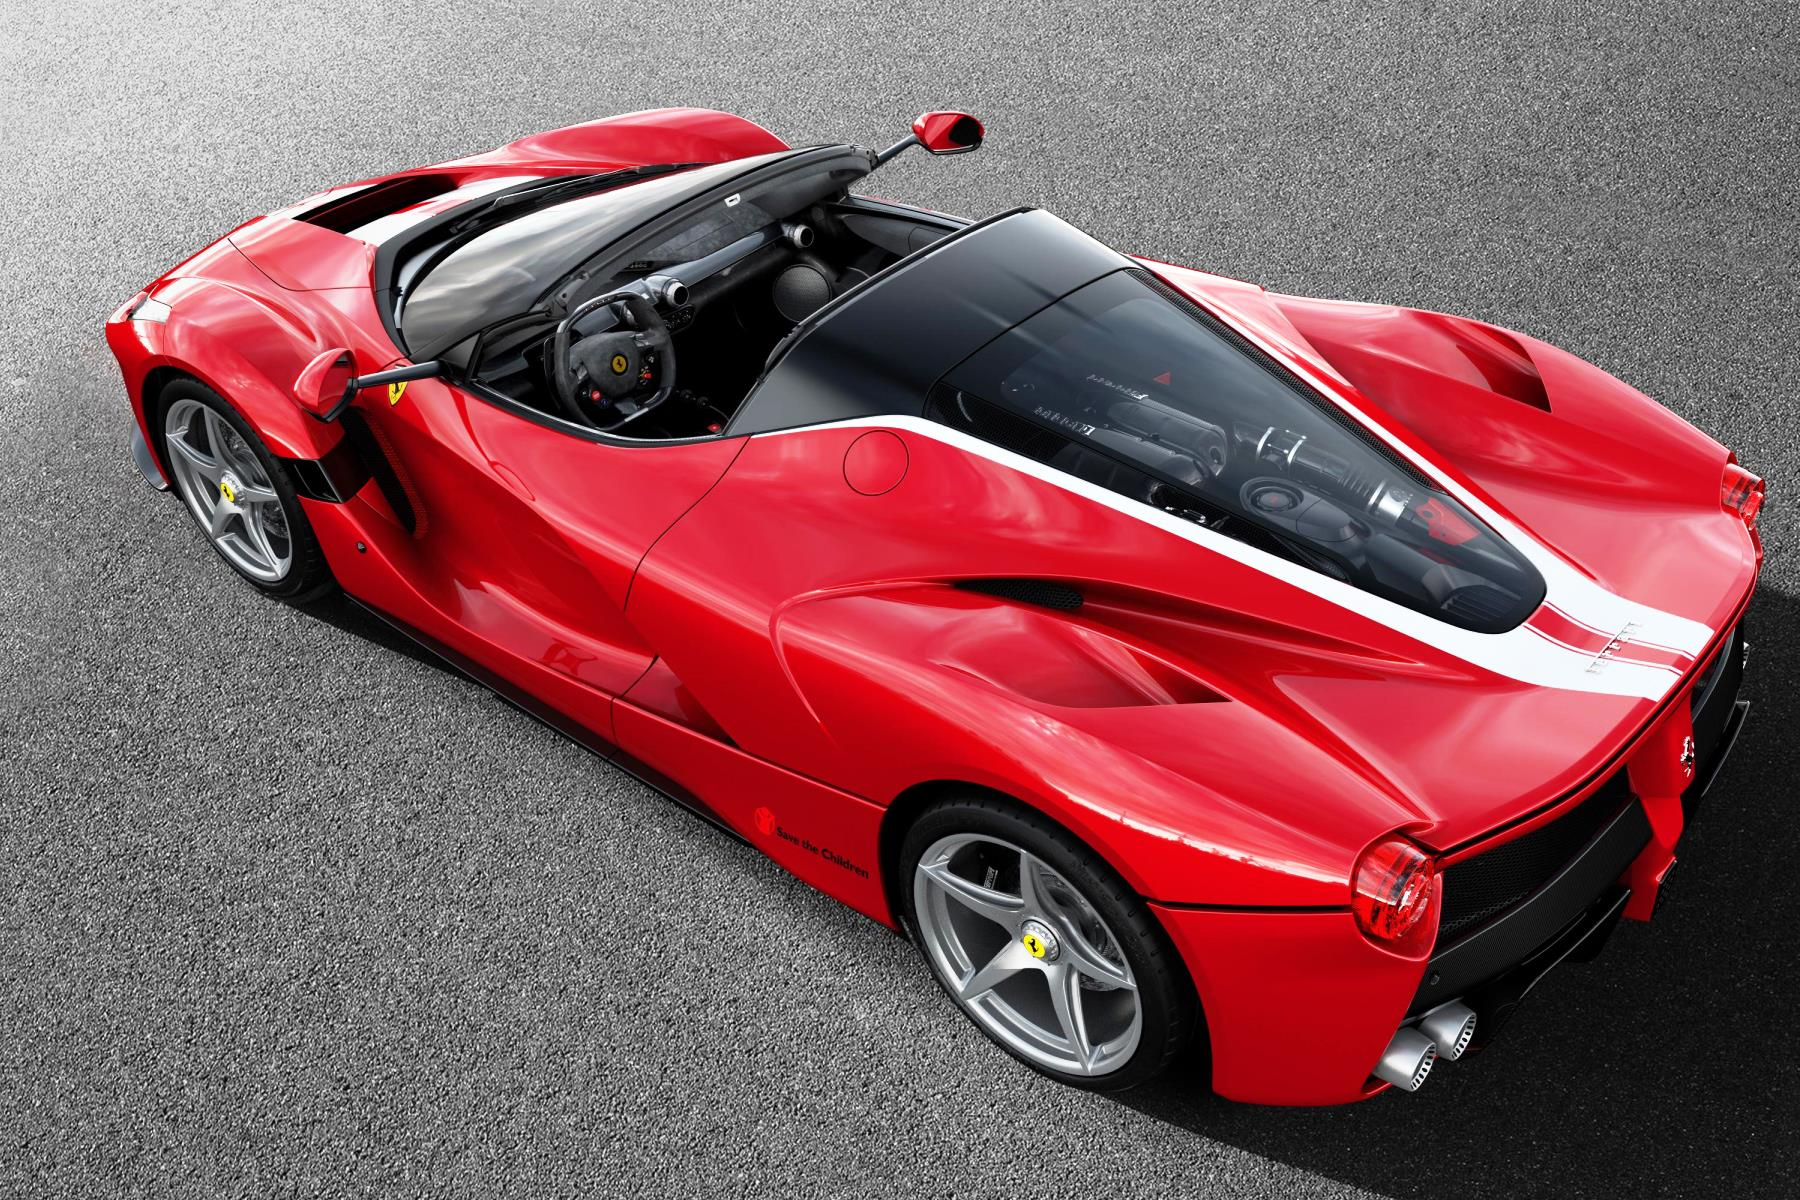 The Final Ferrari LaFerrari Aperta Sold at Auction for $10 Million